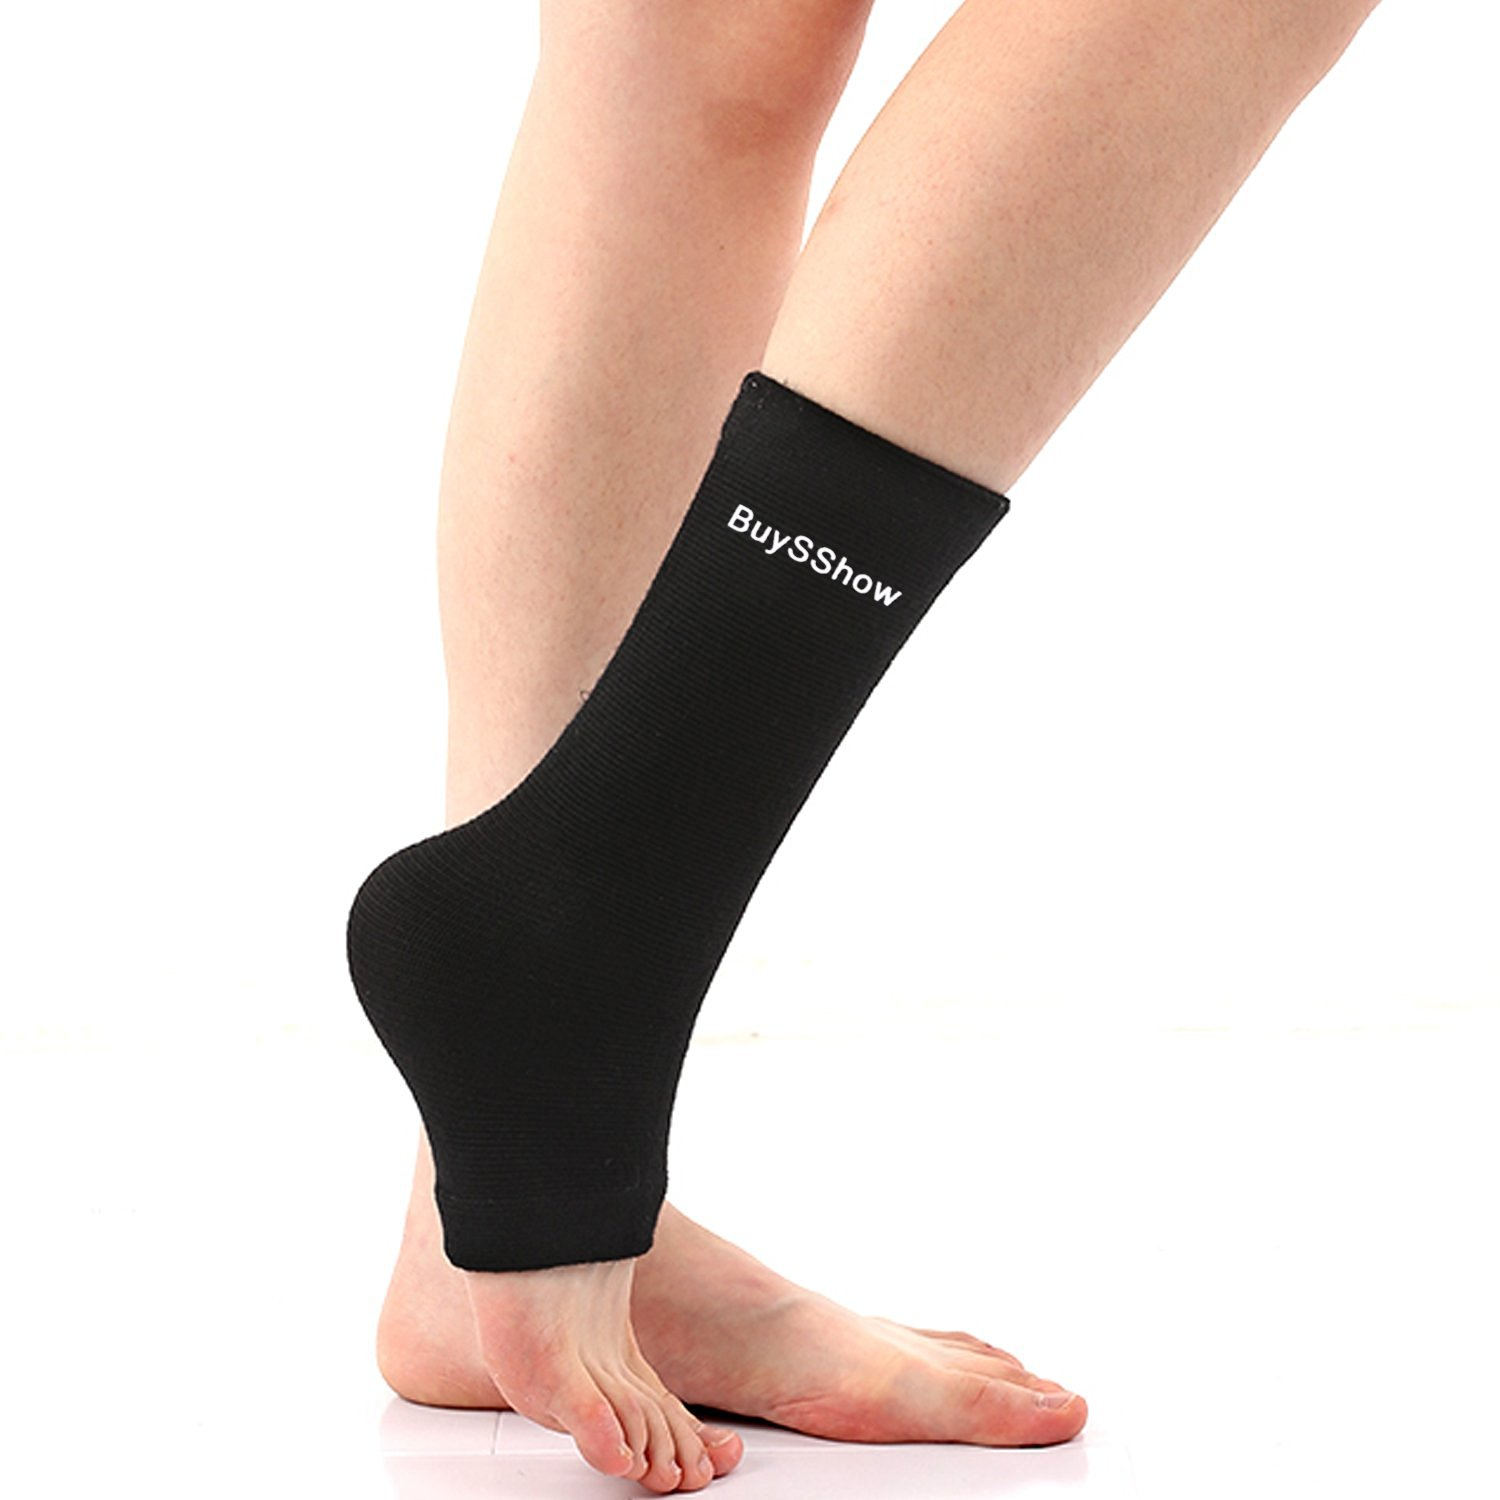 BuySShow 1-Pair Ankle Support   Plantar Fasciitis Foot Sleeve for Men    Women - 10f09efeea